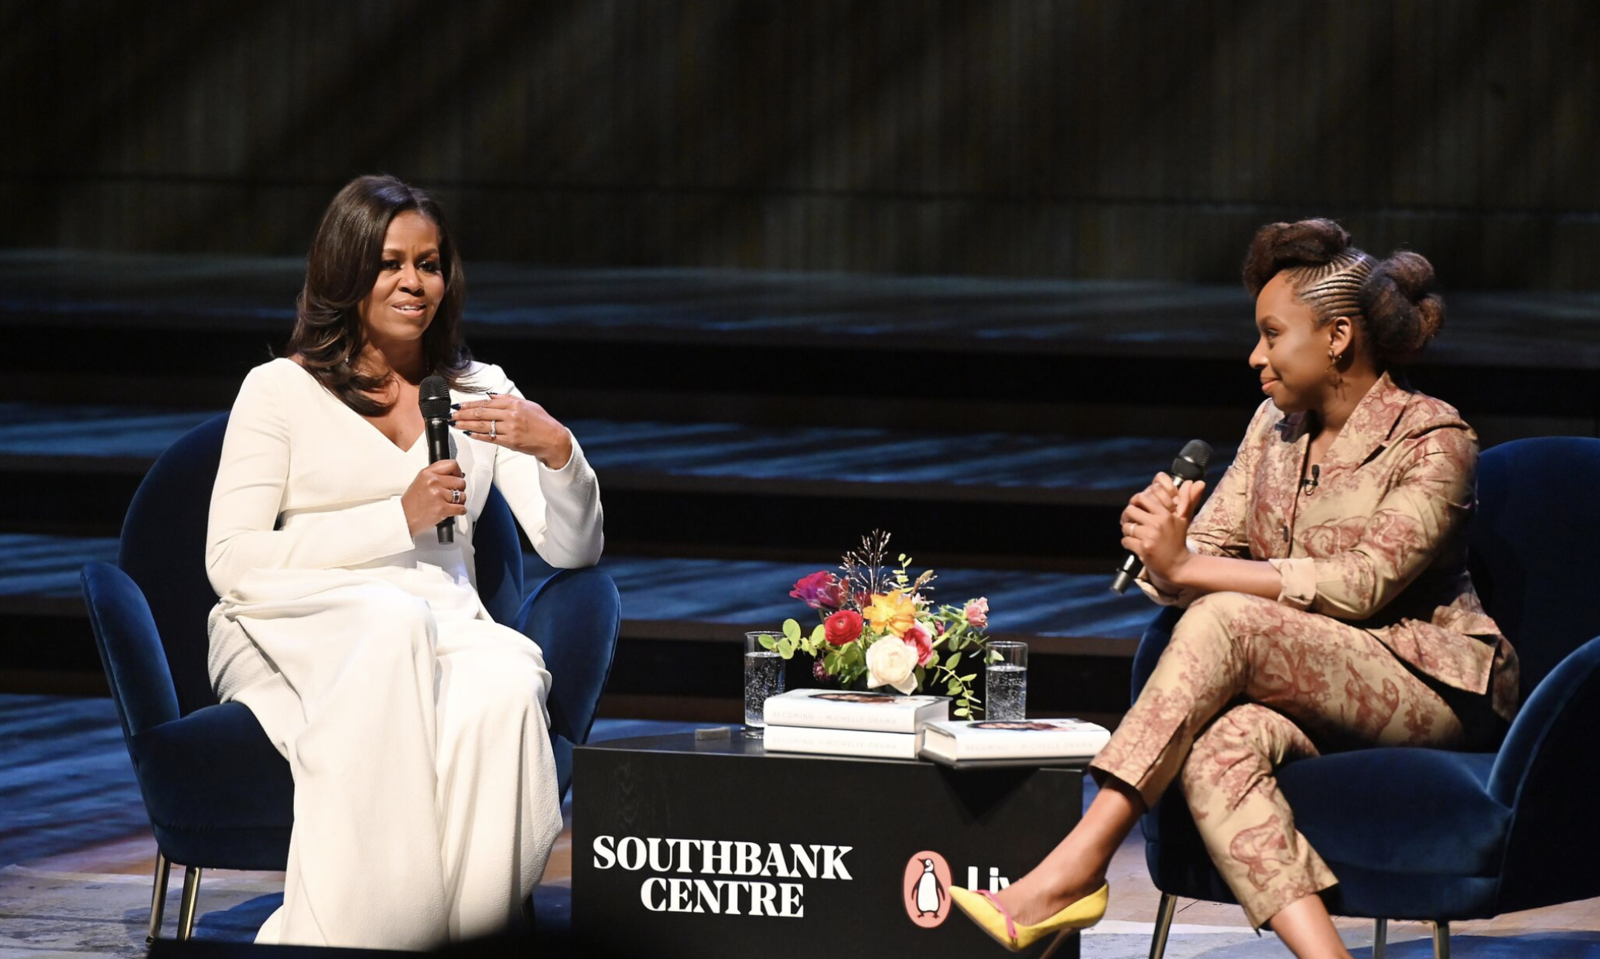 Michelle Obama (left) and Chimamanda Ngozi Adichie at the Southbank Centre for the UK stop of Obama's book tour.